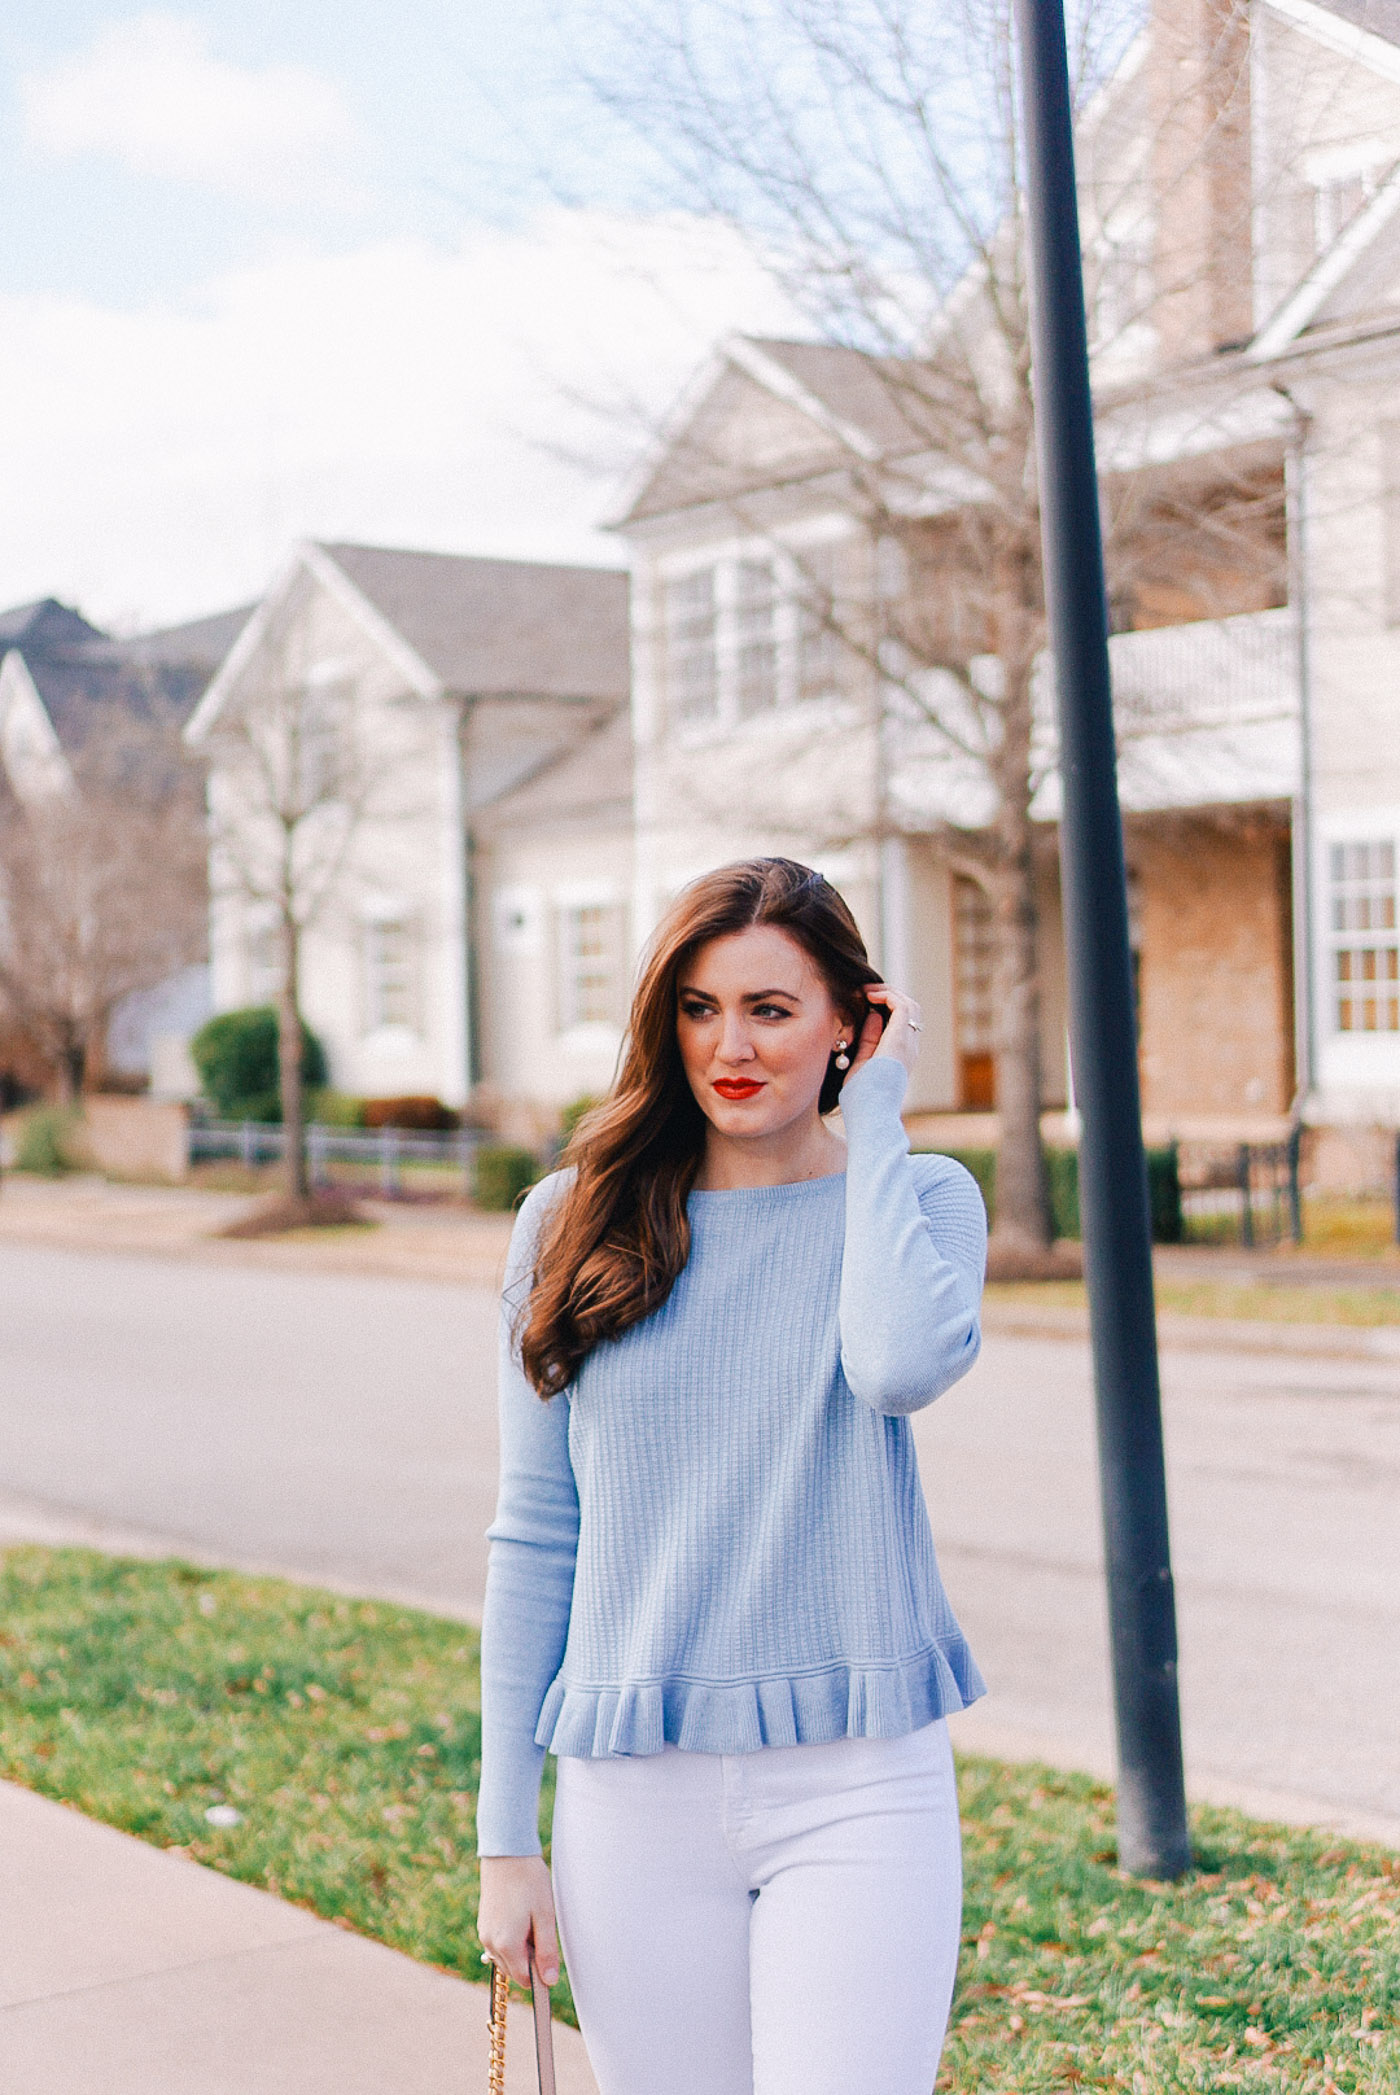 Encouragement to keep dreaming and encourage others to dream by Lauren Cermak of the Southern lifestyle blog, Going For Grace.